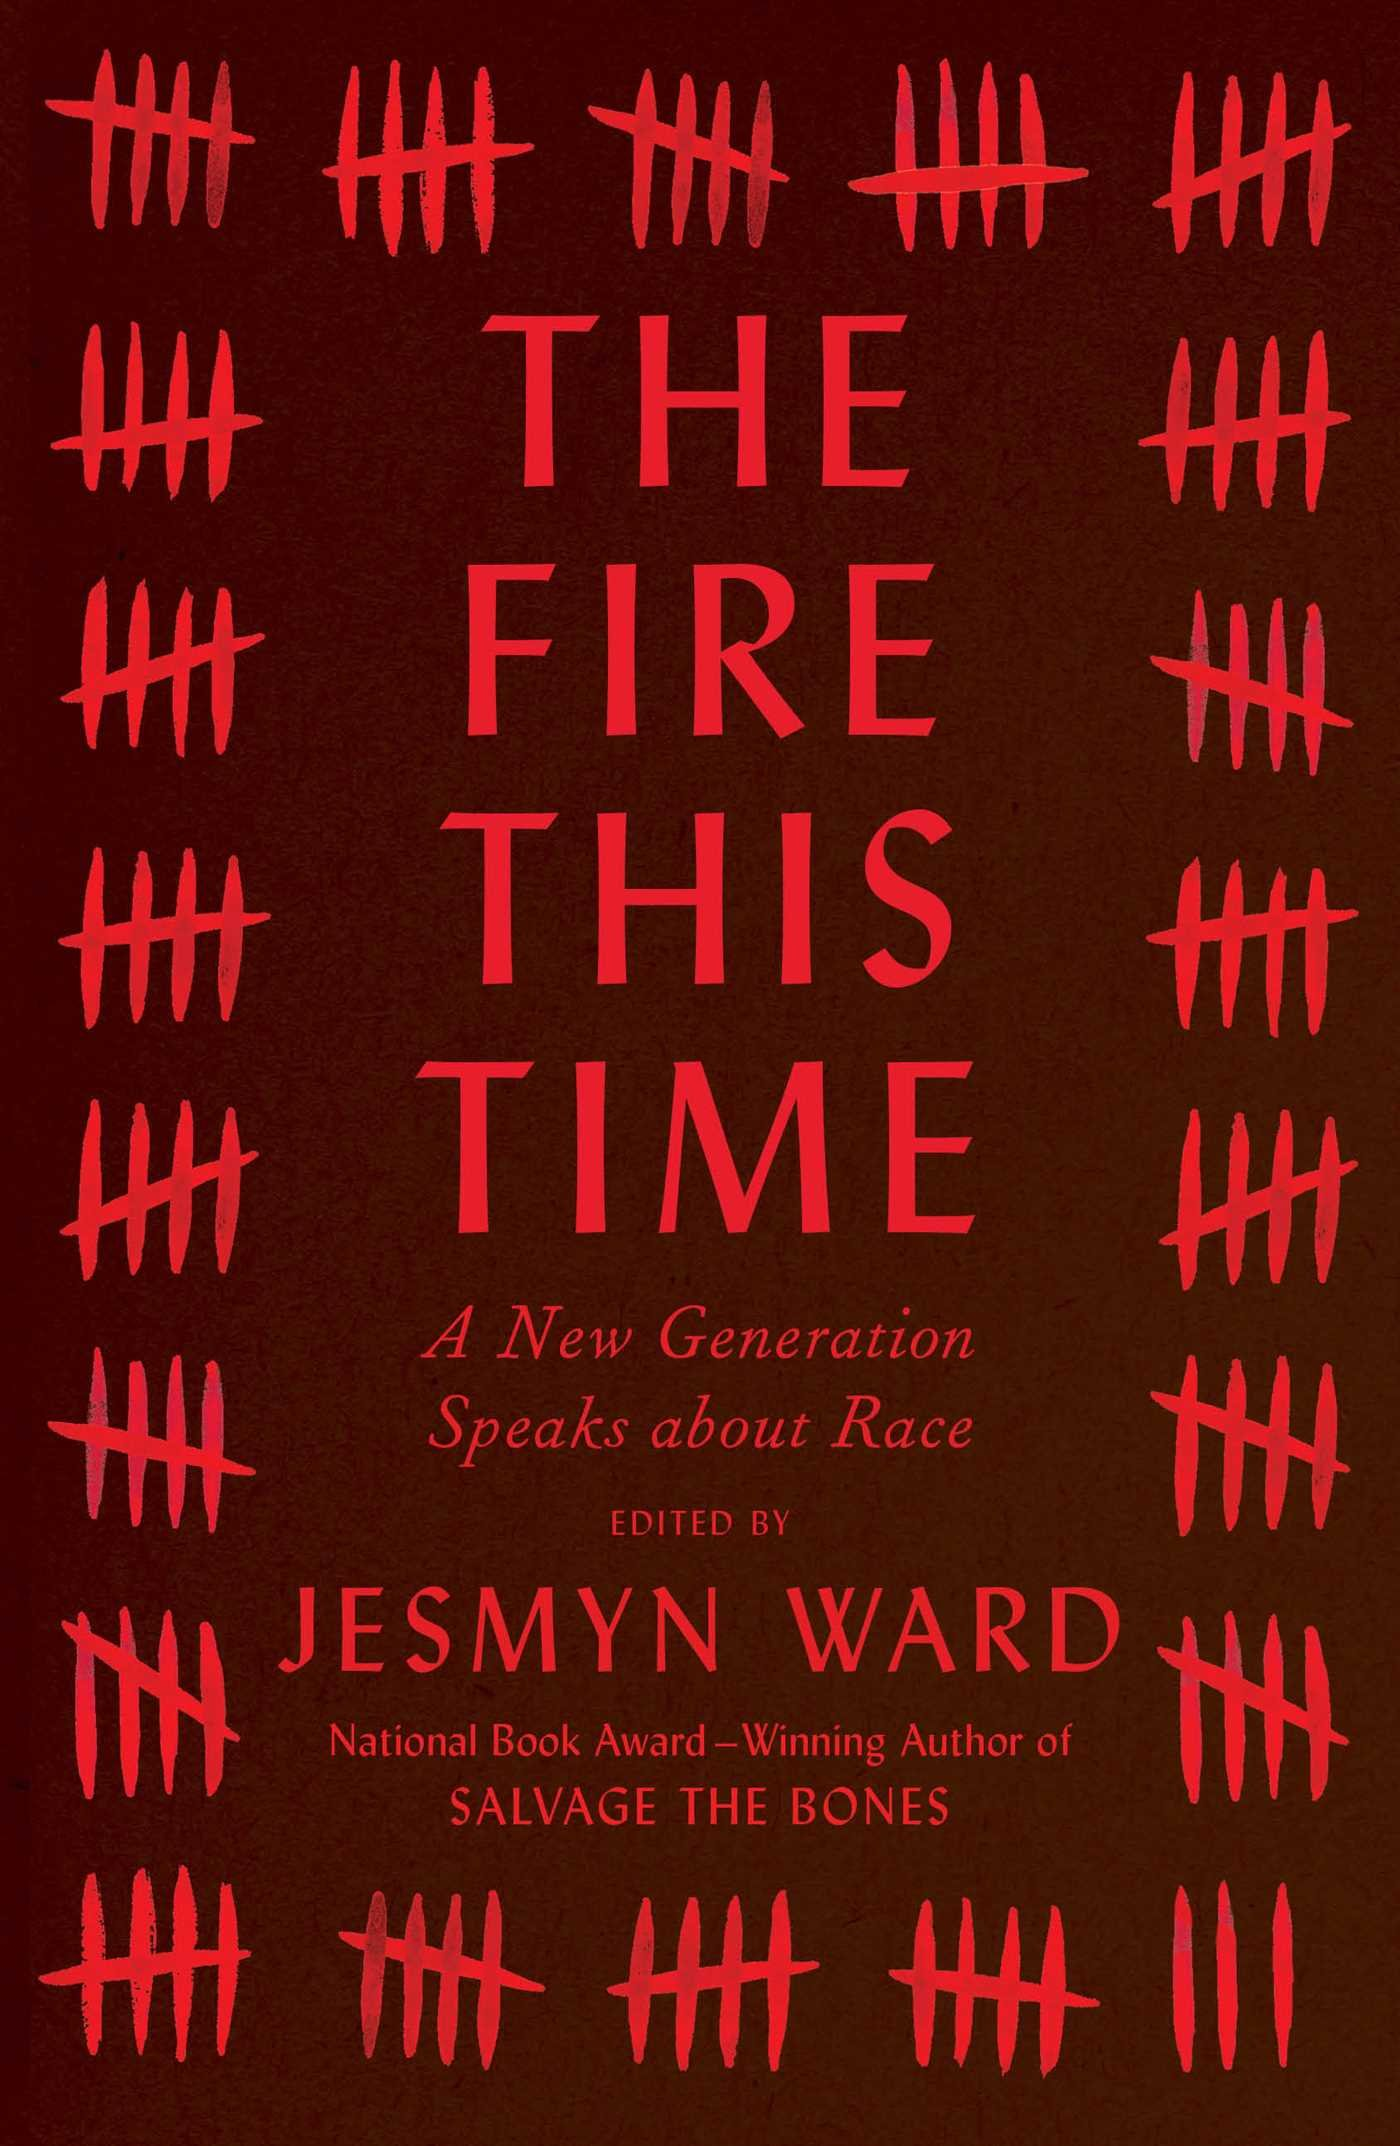 The Fire This Time: A New Generation Speaks about Race by Jesmyn Ward